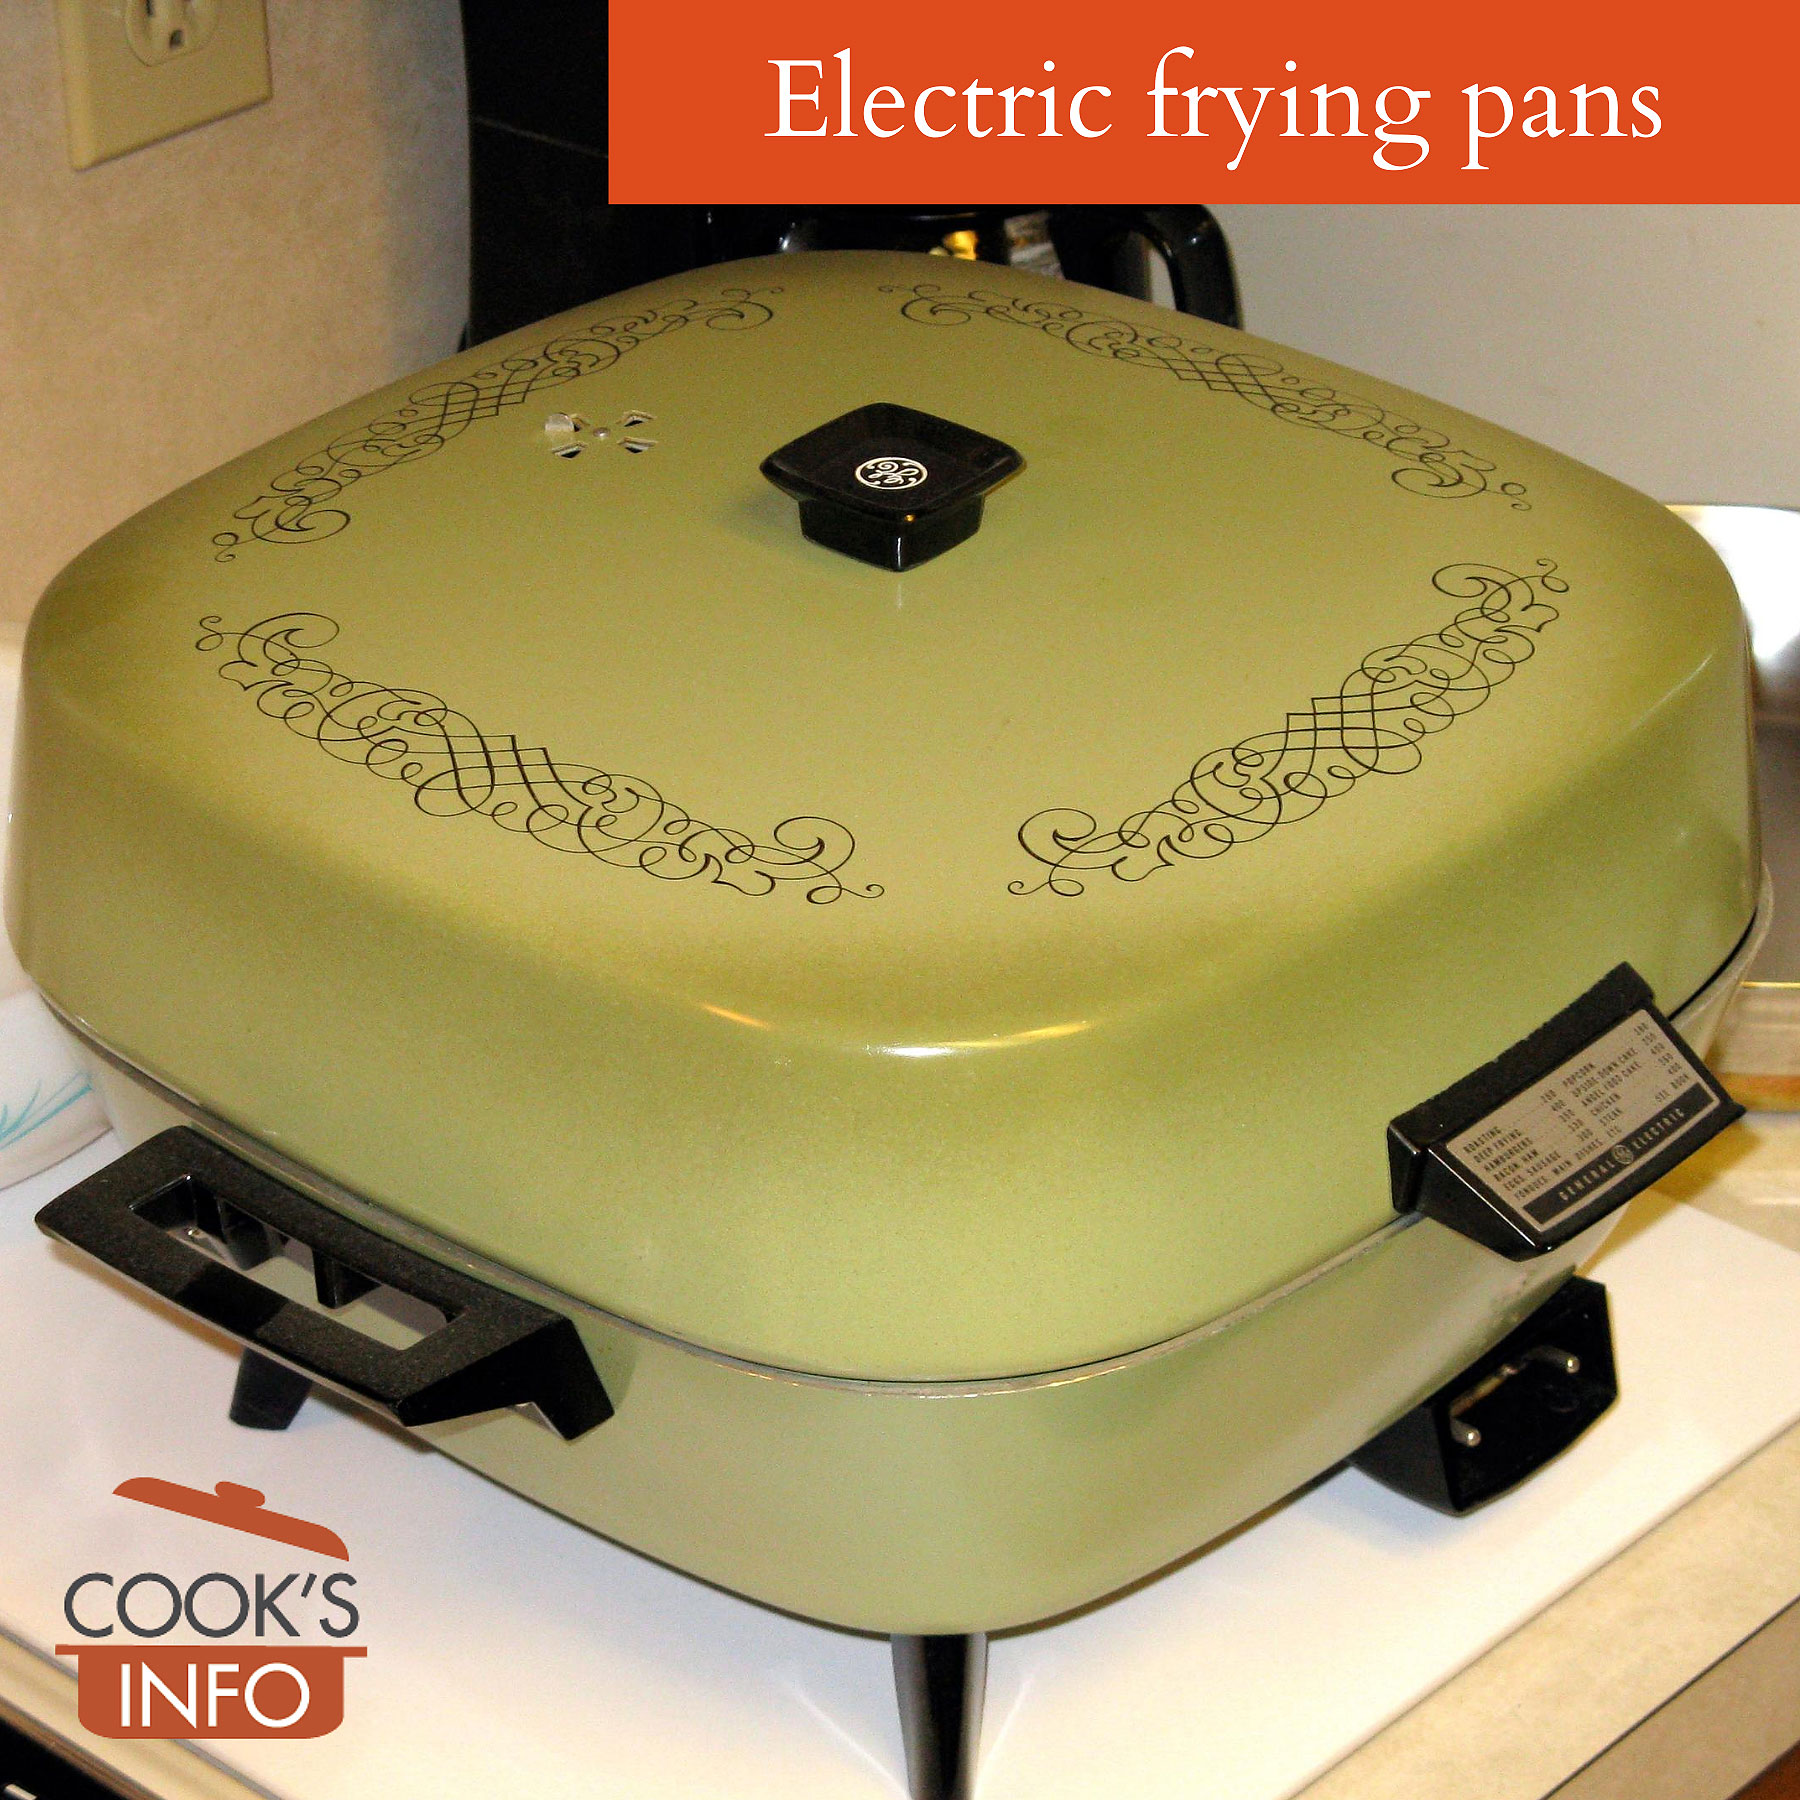 Electric frying pan, 1970s with cover